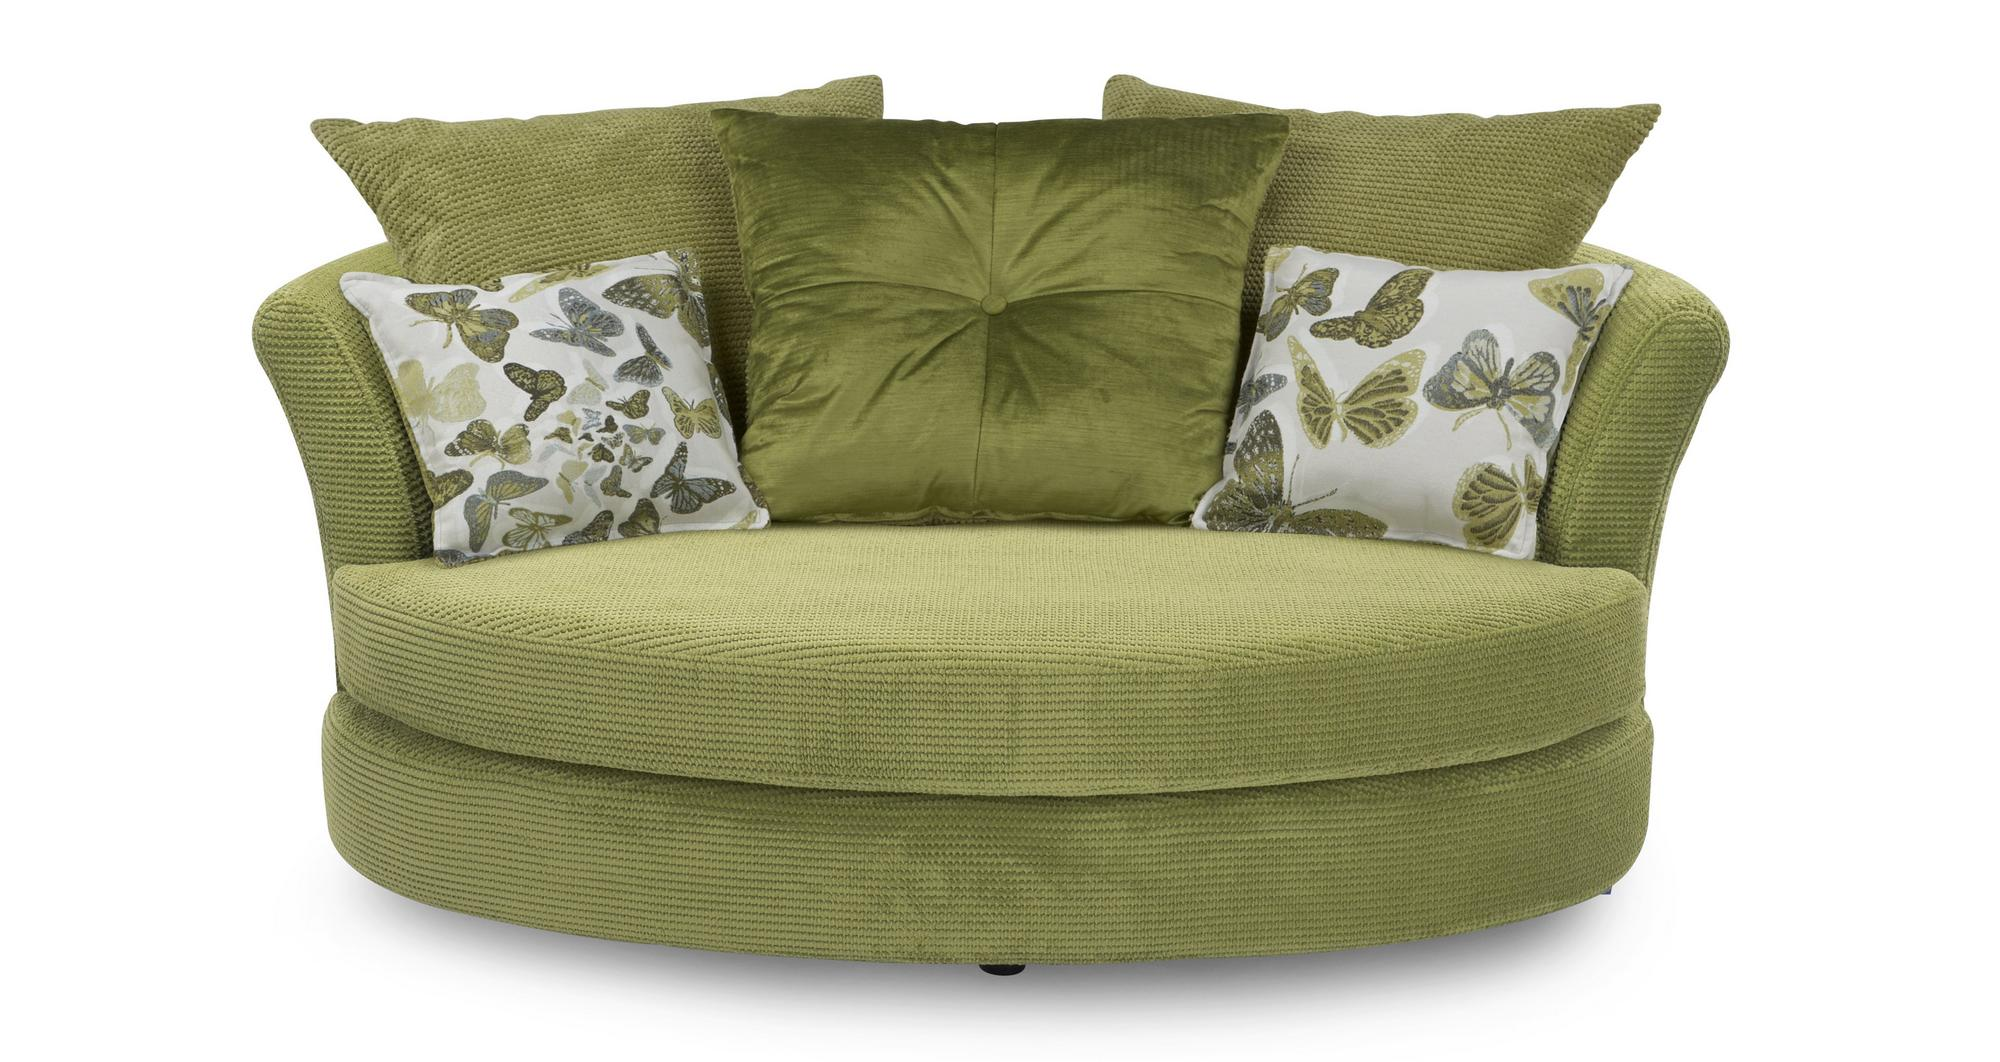 Dfs Escape Lime Green Fabric Set Sofa Bed Cuddler